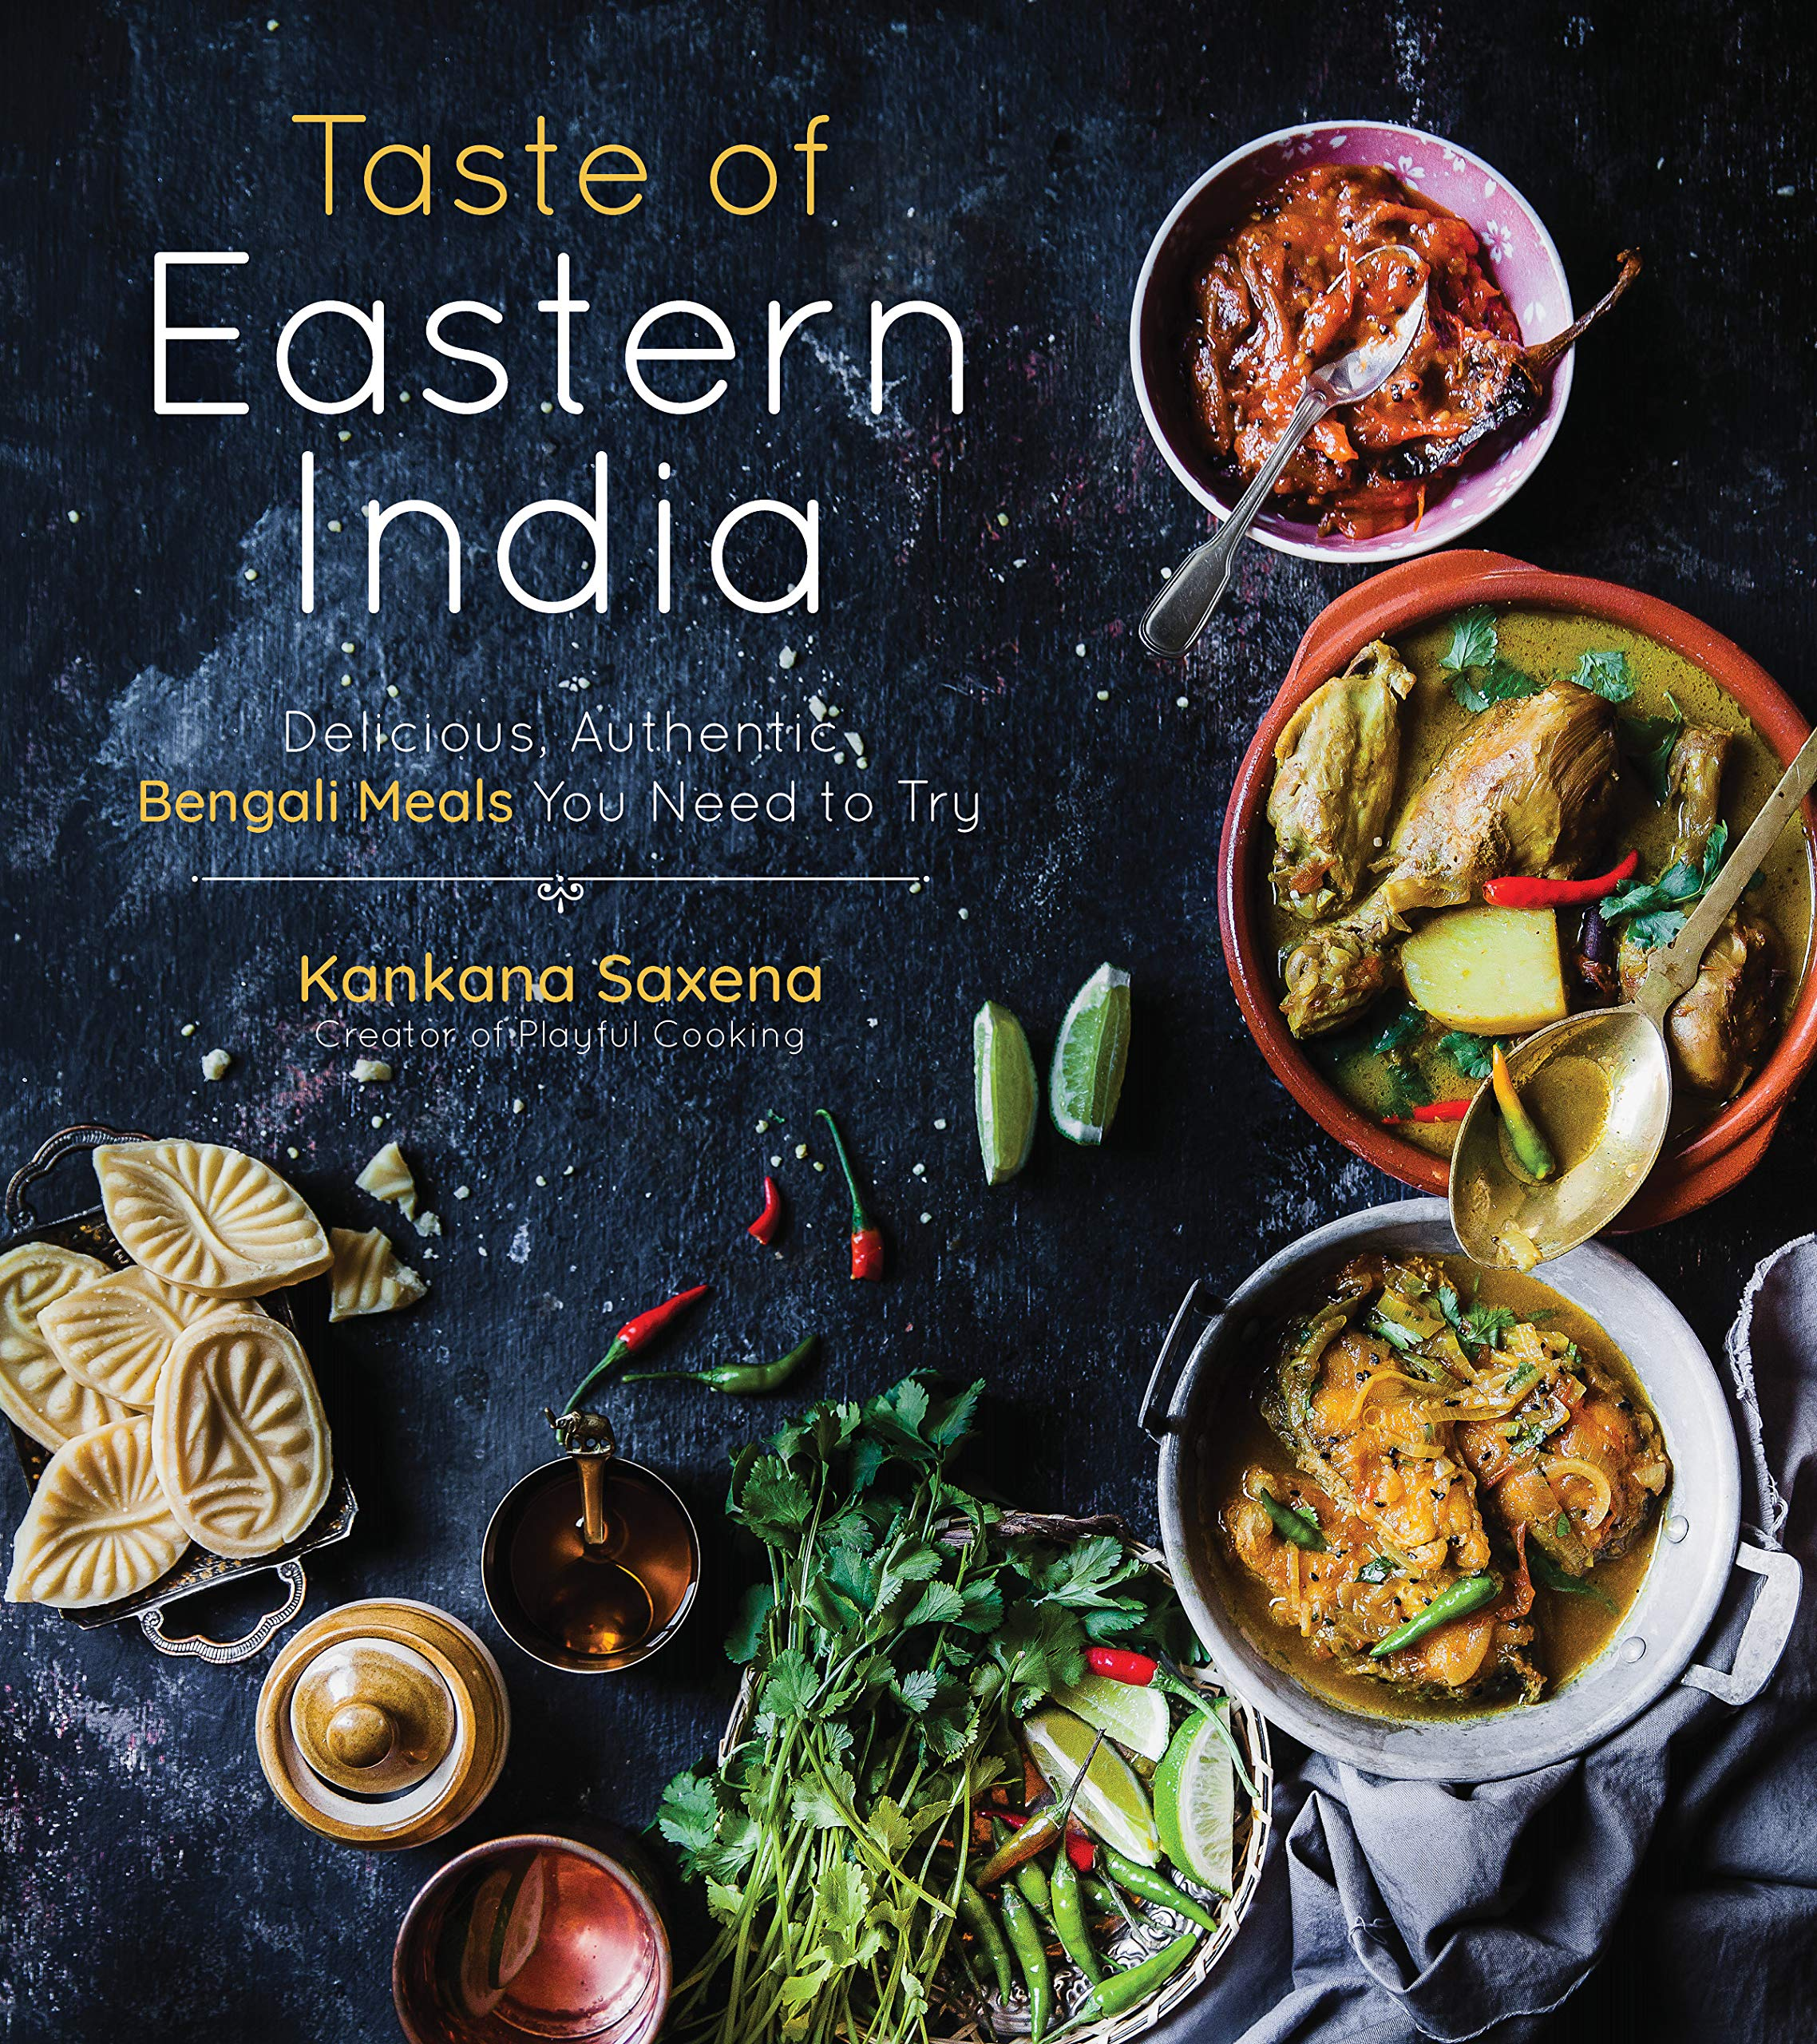 Taste of Eastern India: Delicious, Authentic Bengali Meals You Need to Try